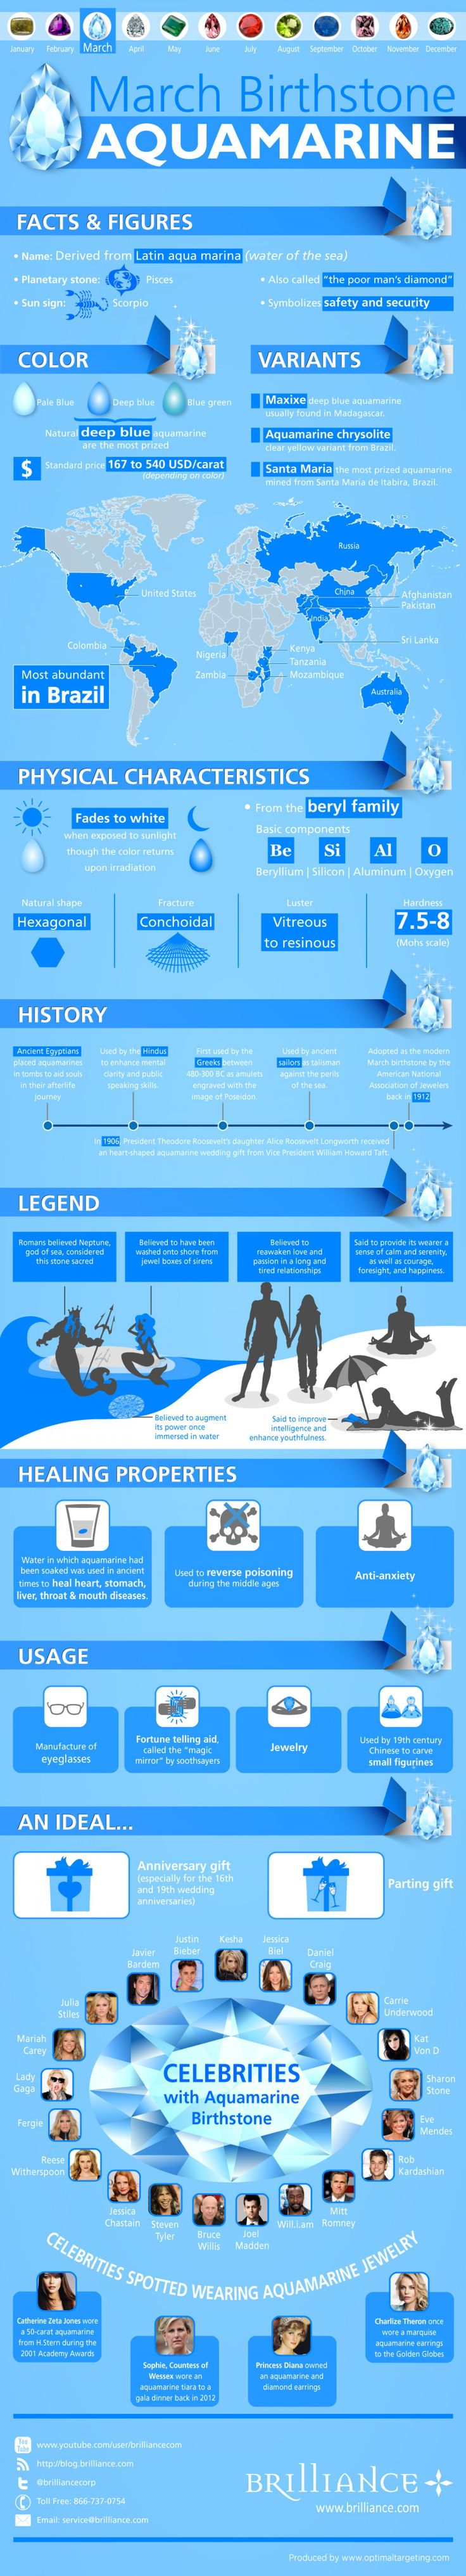 Aquamarine, The Birthstone of March Infographic